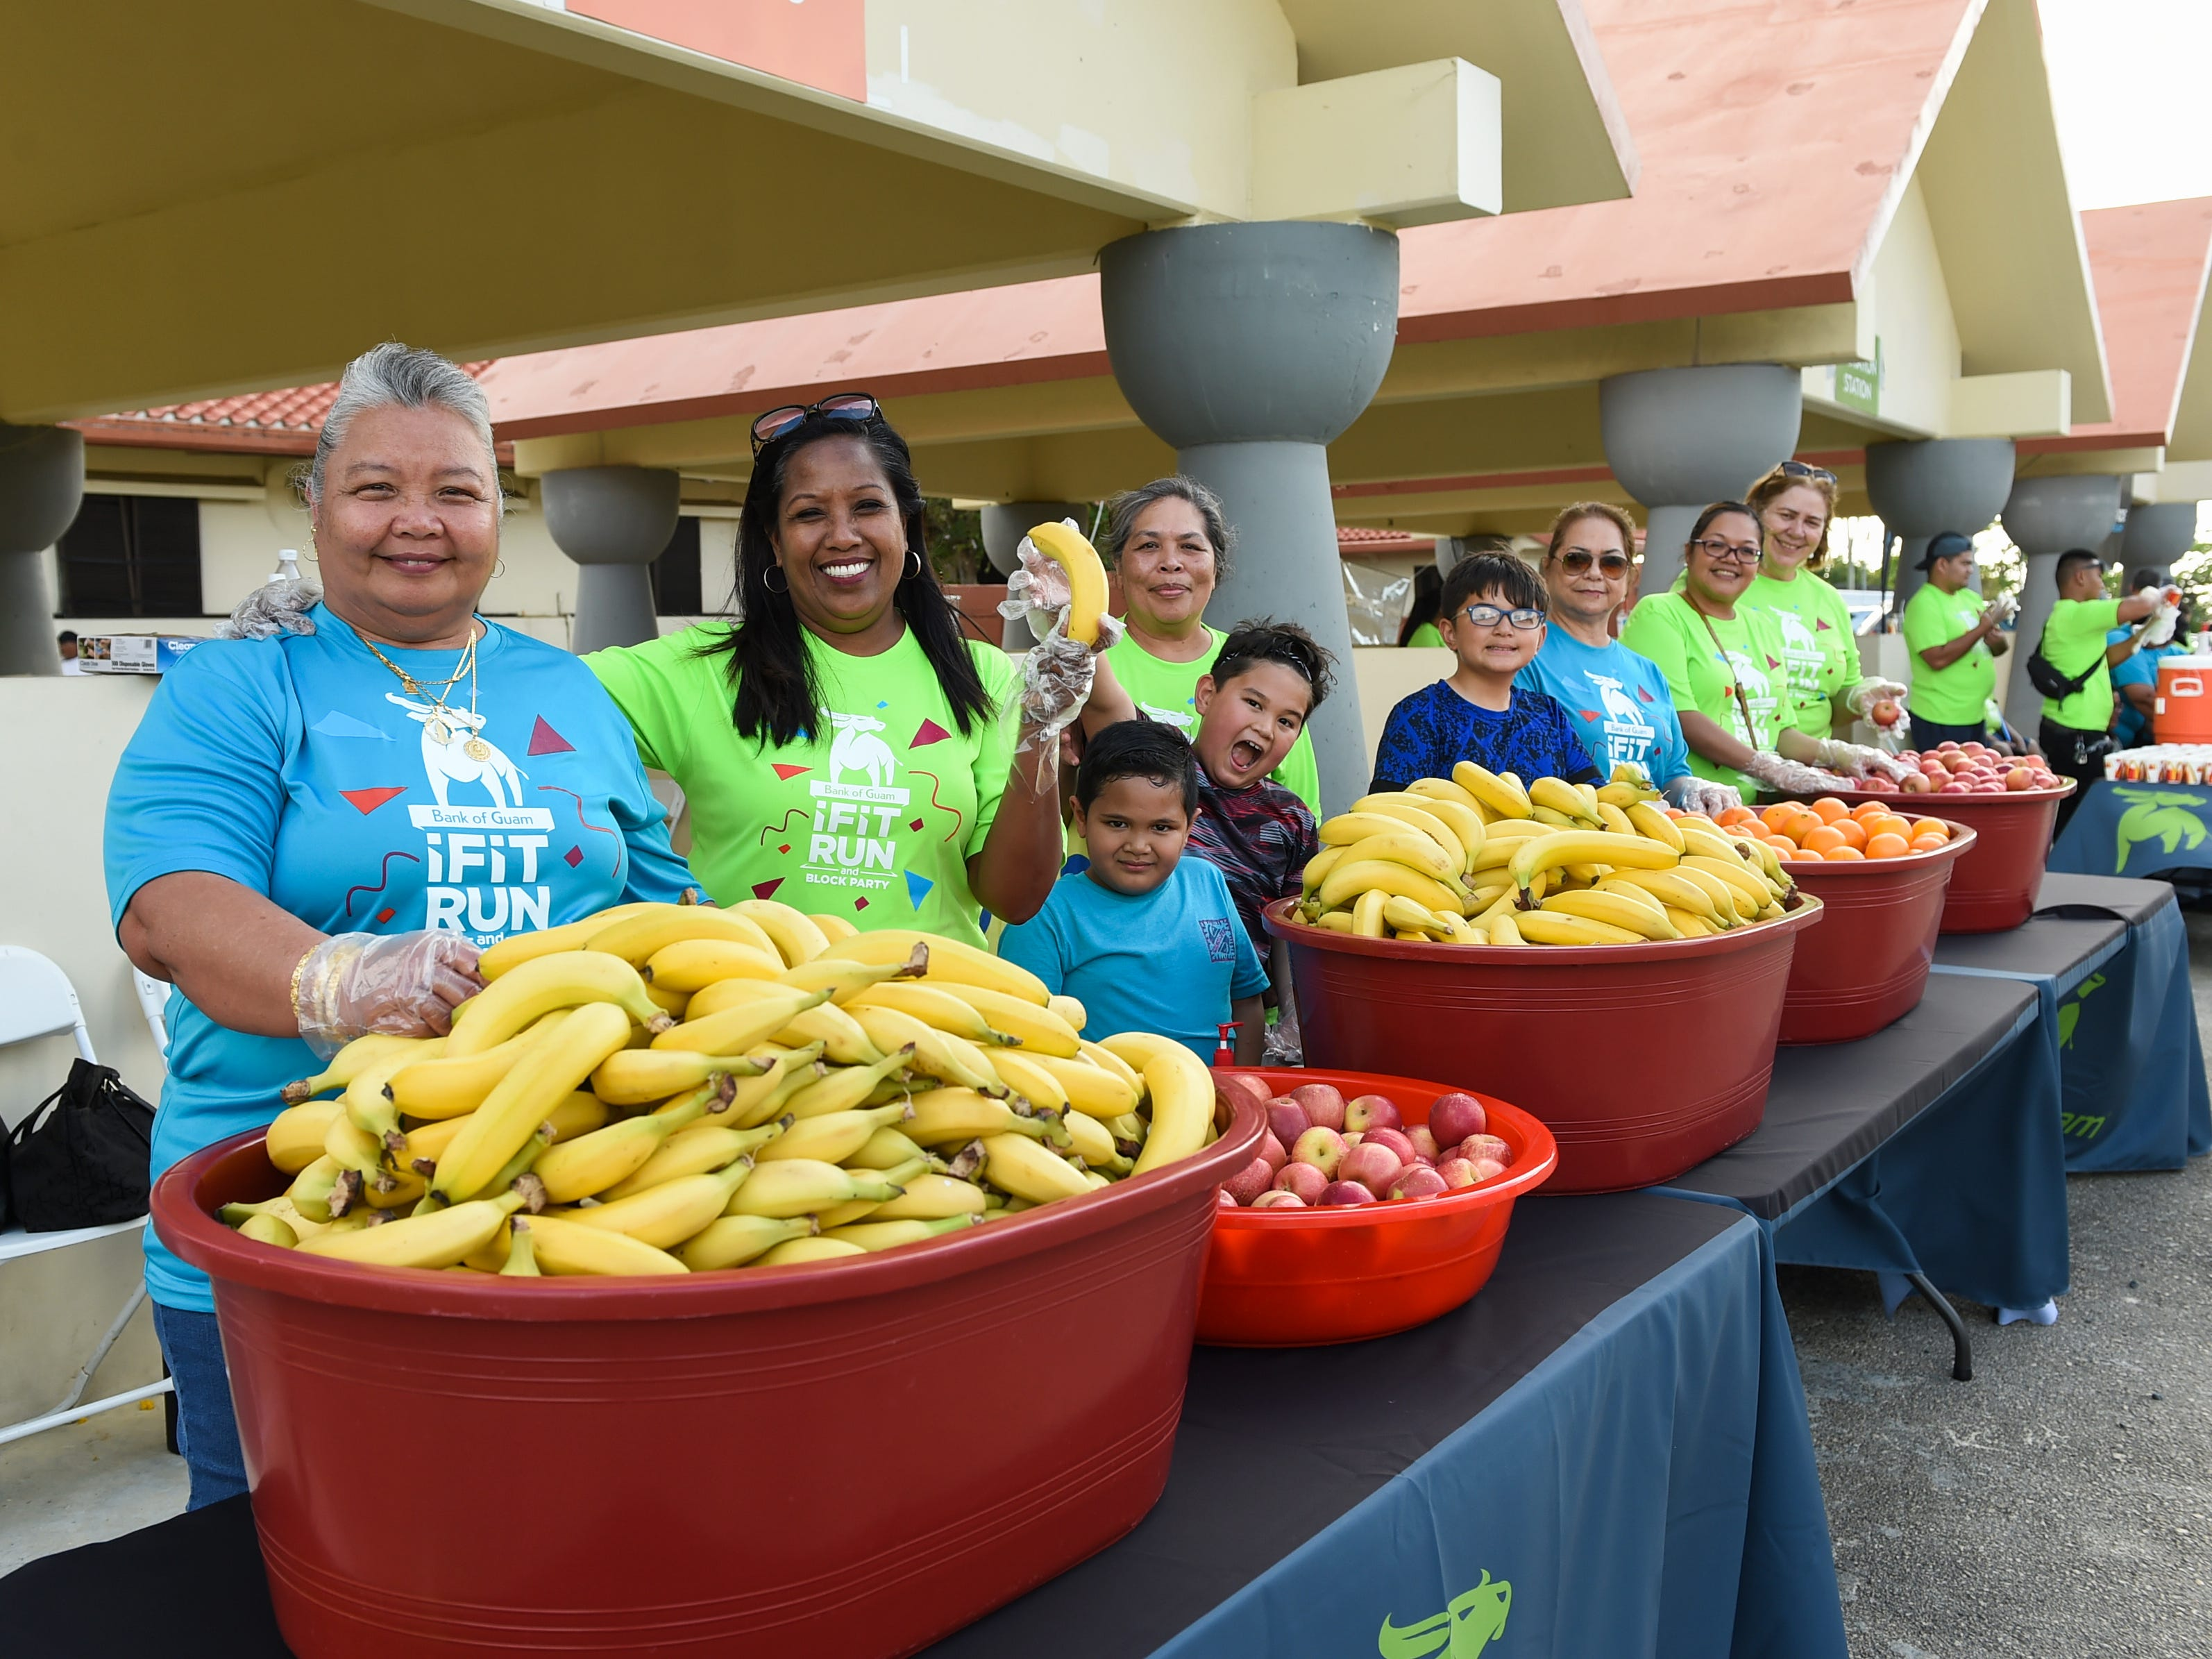 Bank of Guam employees and their family members standby at fruit tables during the Bank of Guam Ifit Run and Block Party at at Chamorro Village in Hagåtña, March 9, 2019.